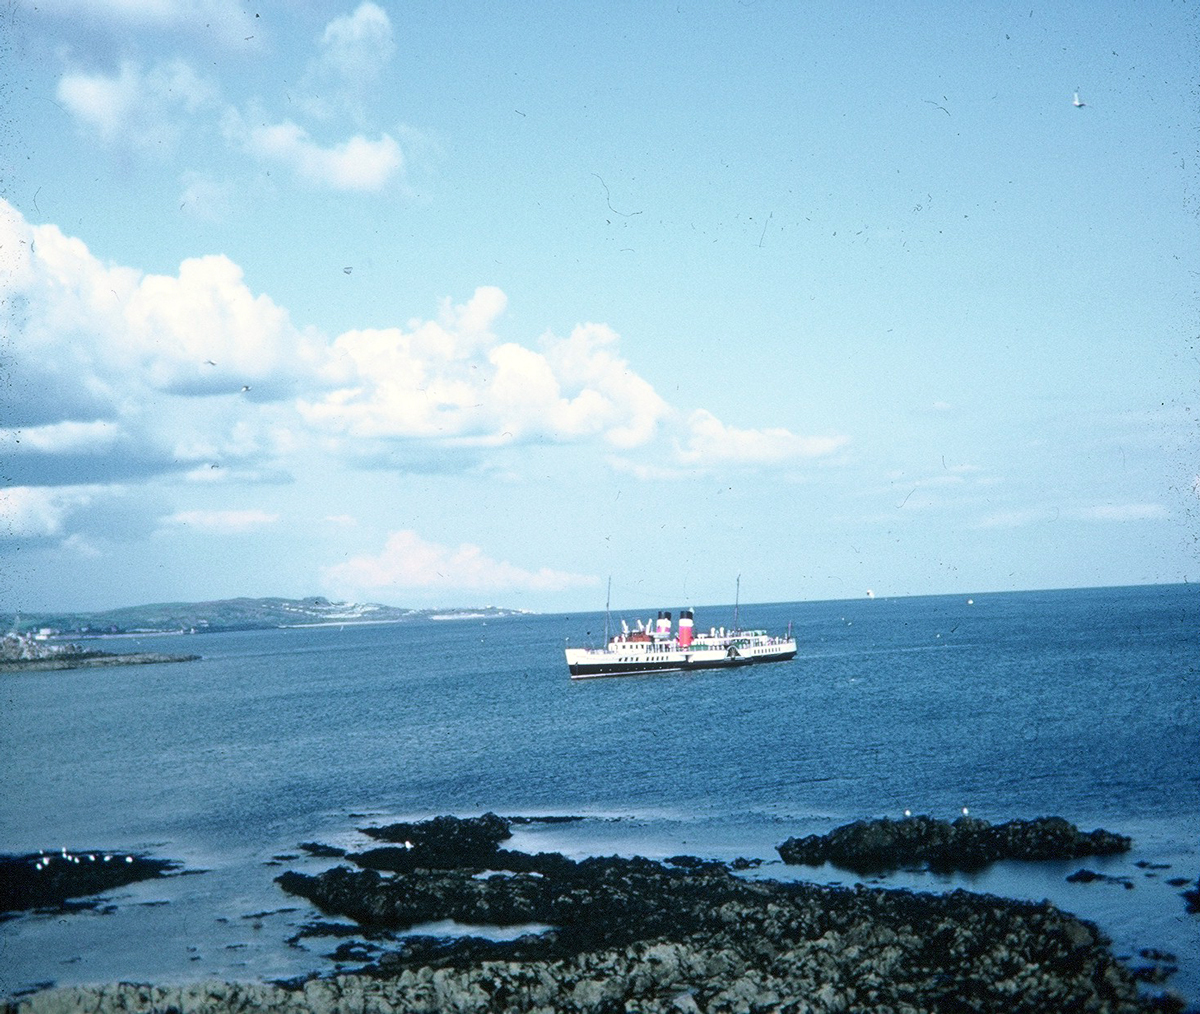 The PS Waverley Off The Shore Of Inchcolm 1980s